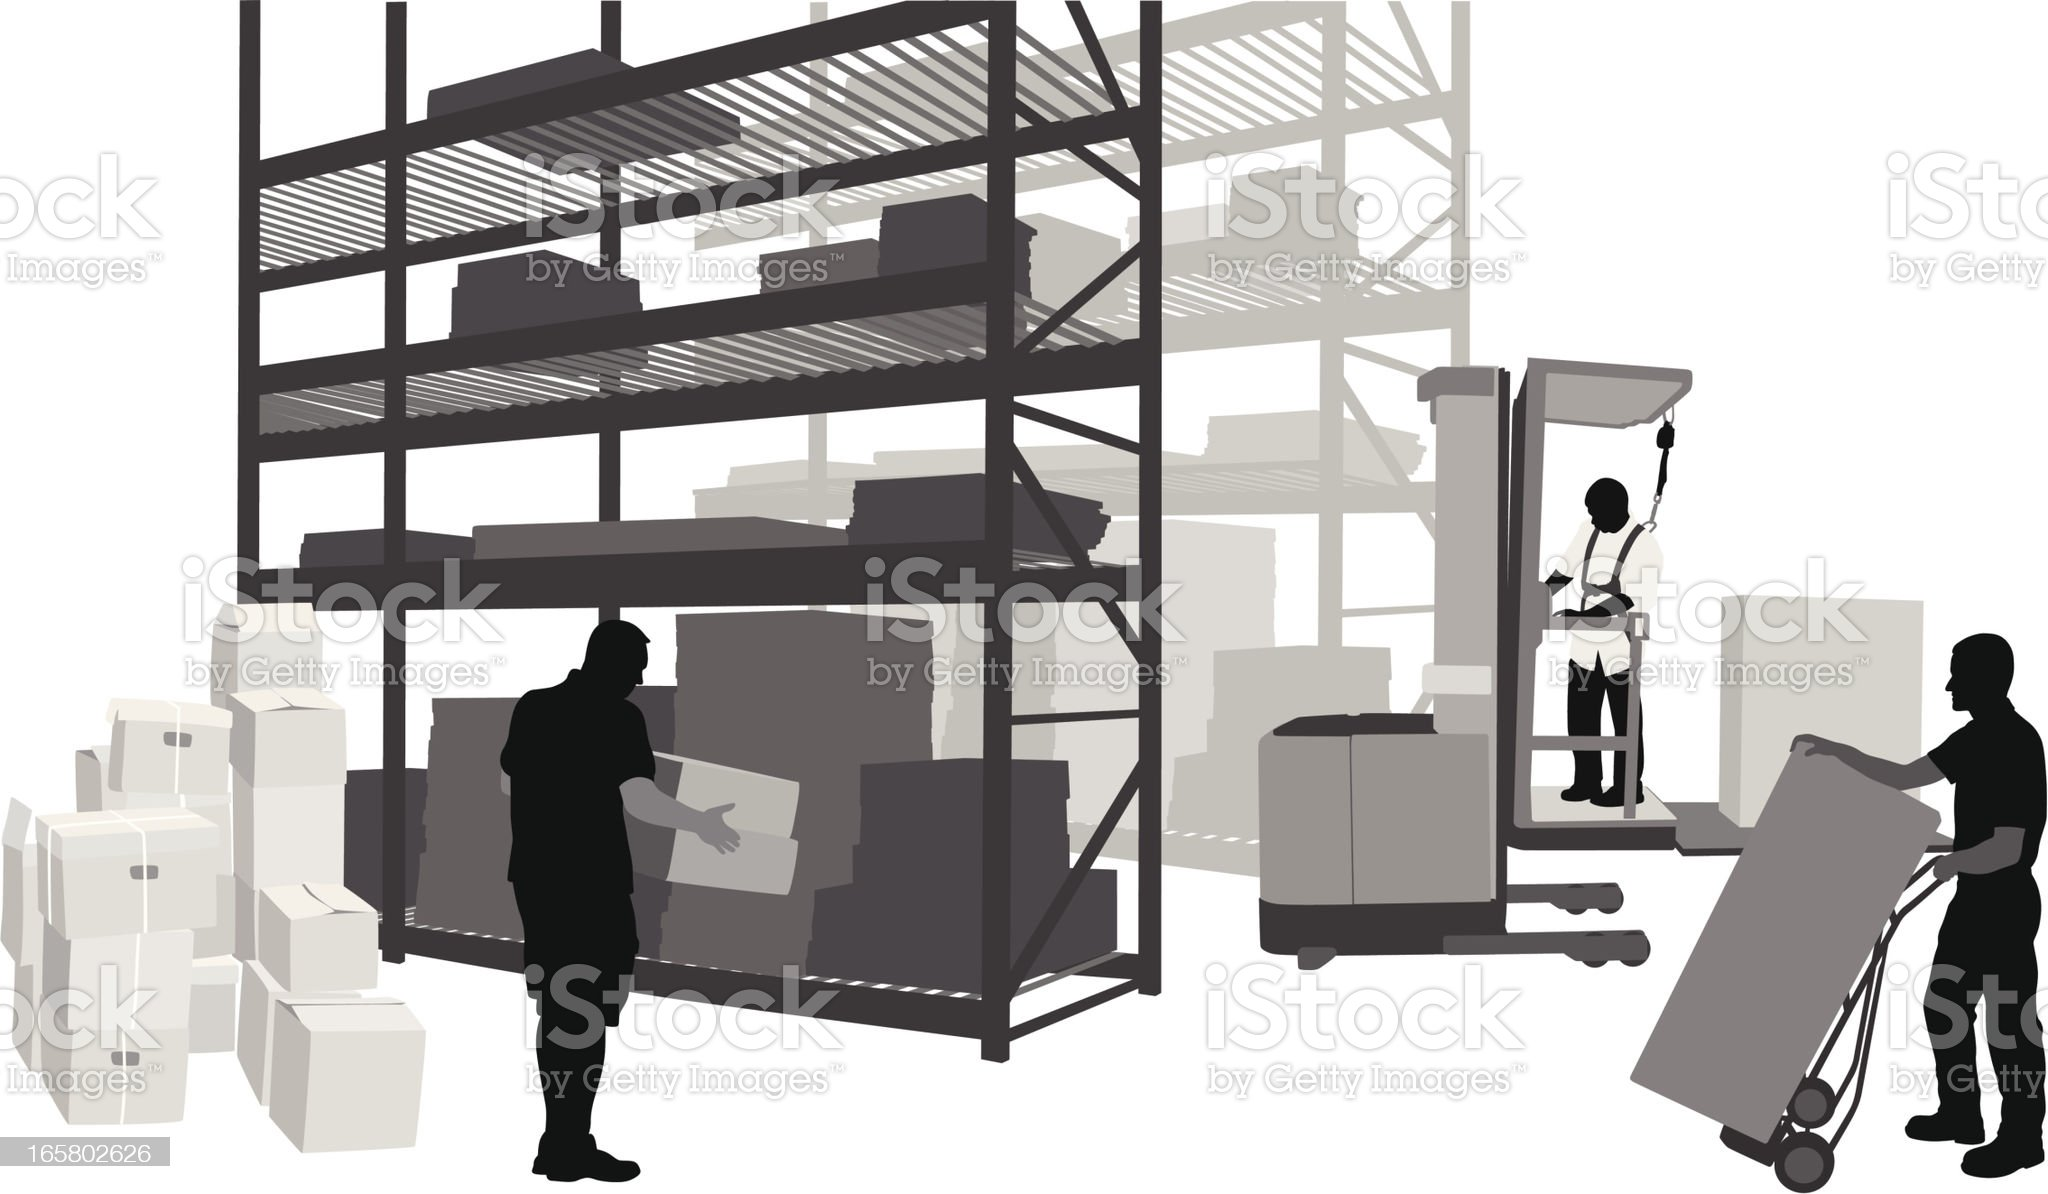 Warehouse Work Vector Silhouette royalty-free stock vector art